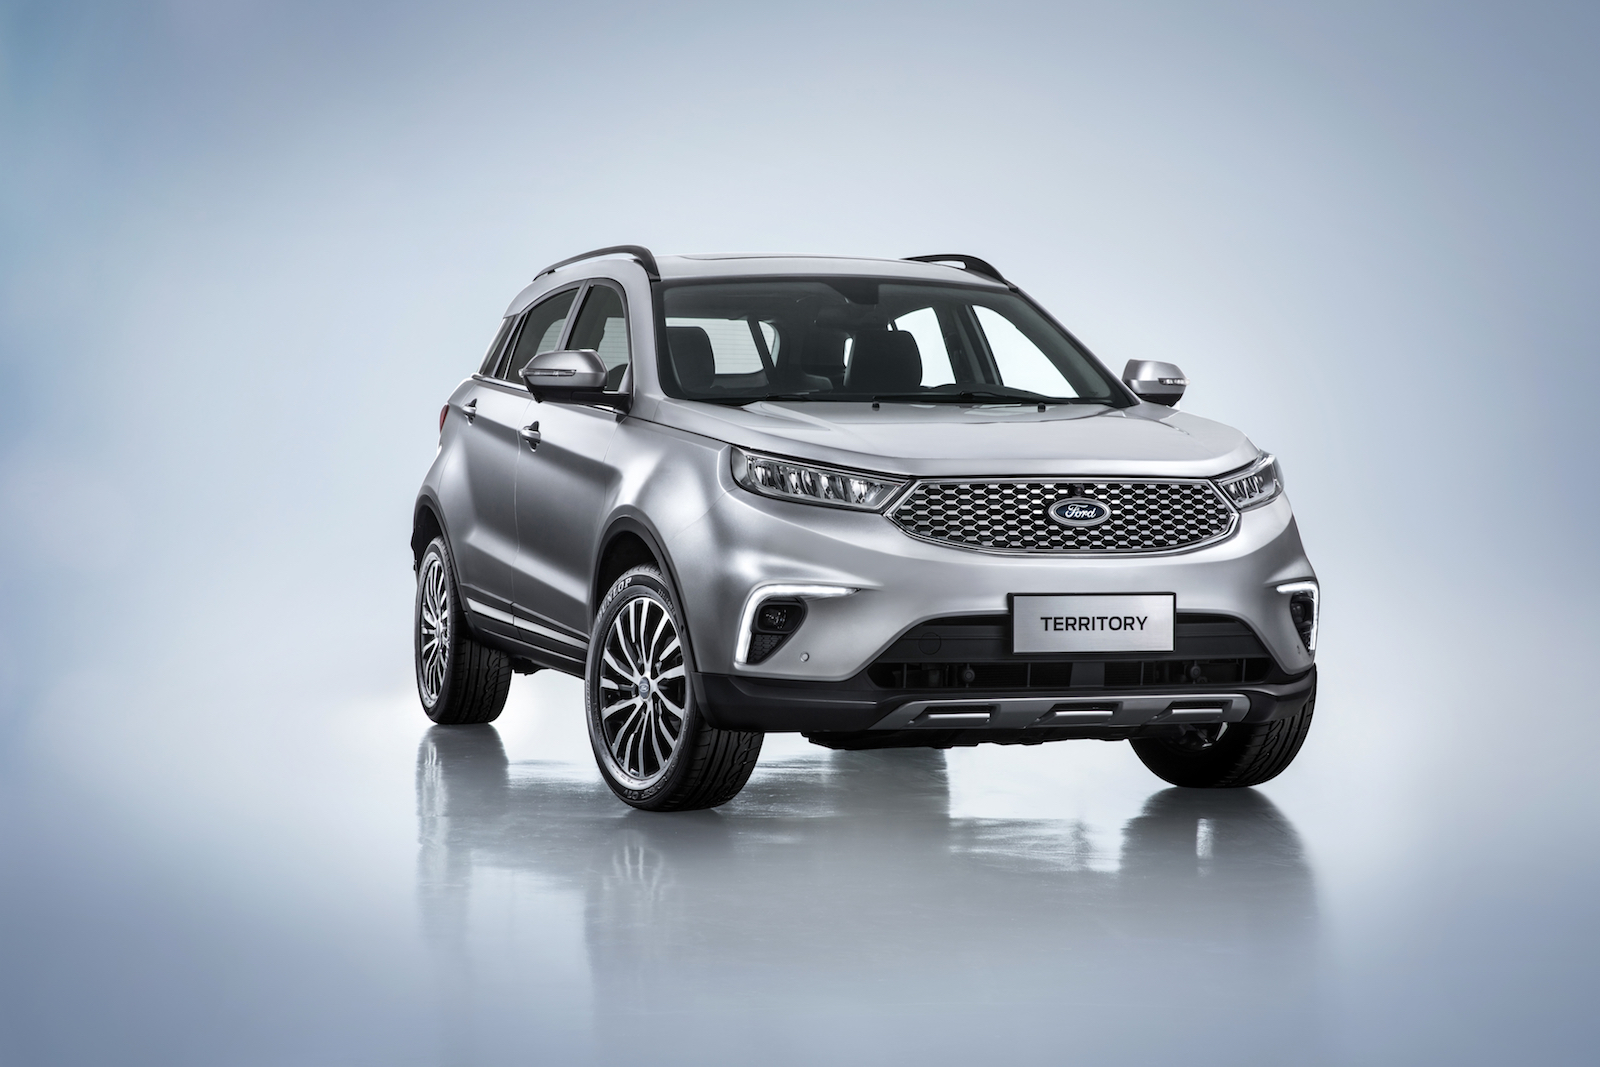 new ford territory crossover coming to china in 48v, plug-in hybrid